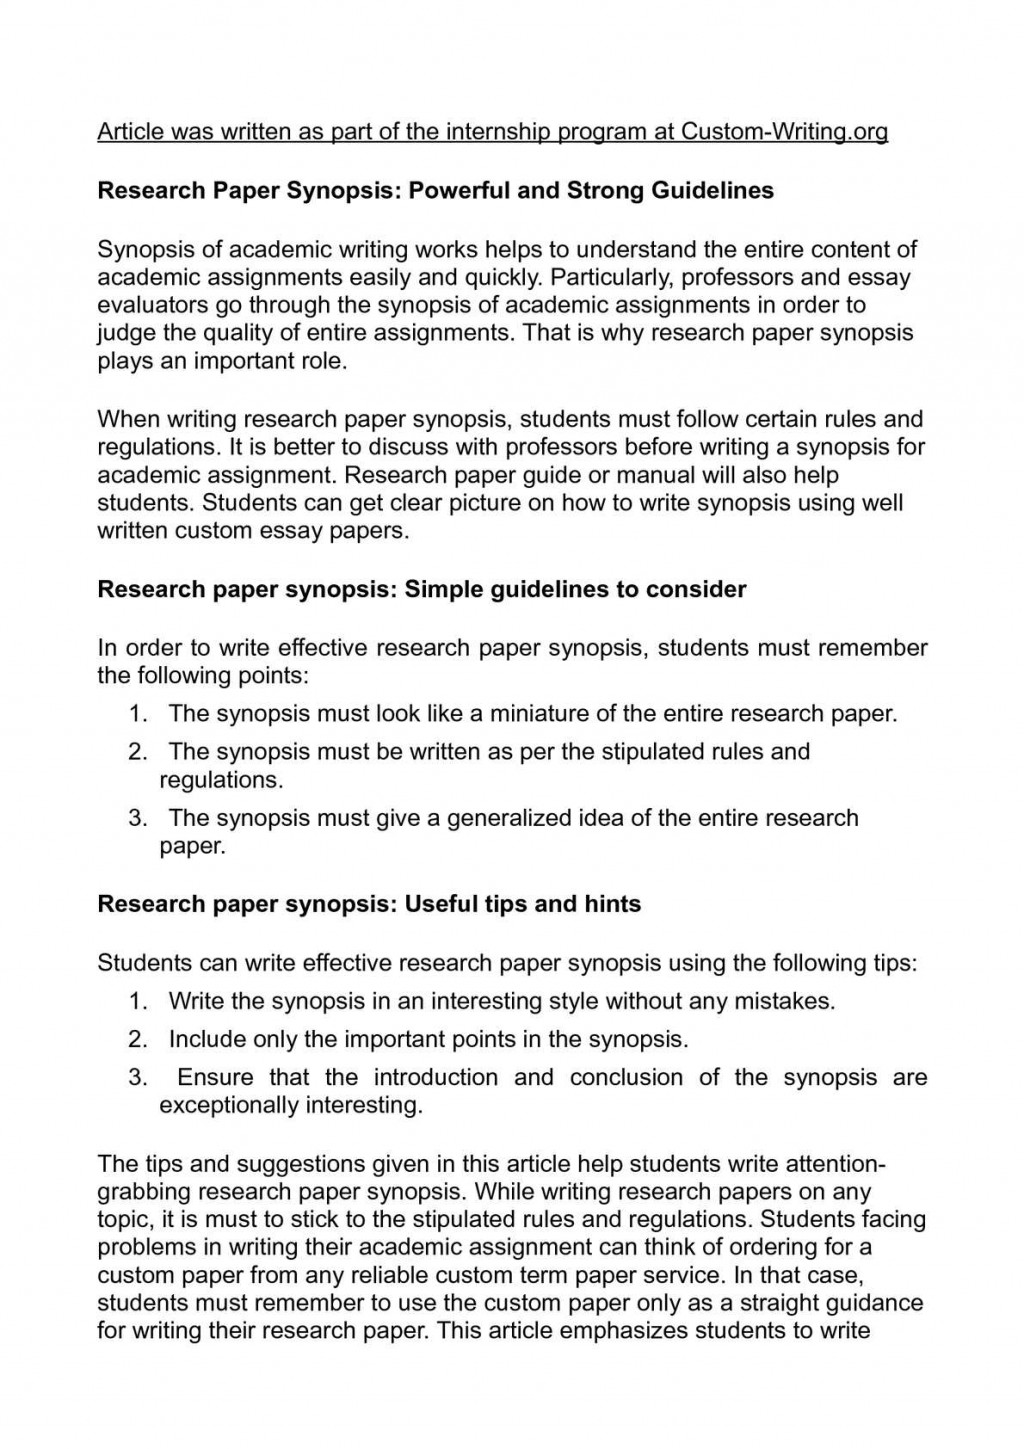 011 P1 Research Paper Order Of Wonderful A Reviews Making Large